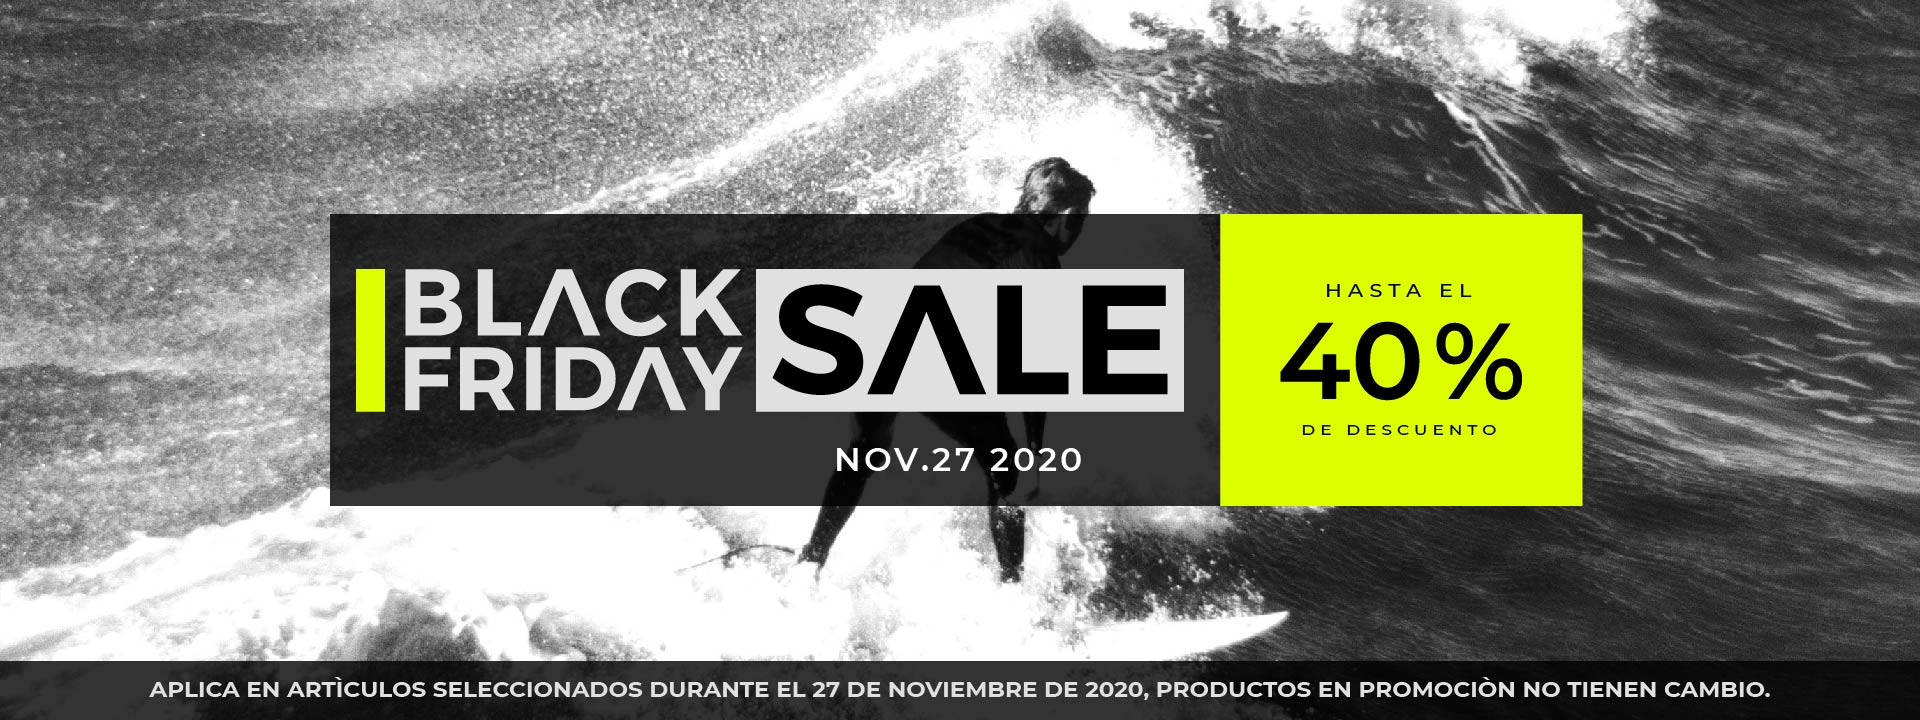 BLACK FRIDAY 2020_BLACK FRIDAY